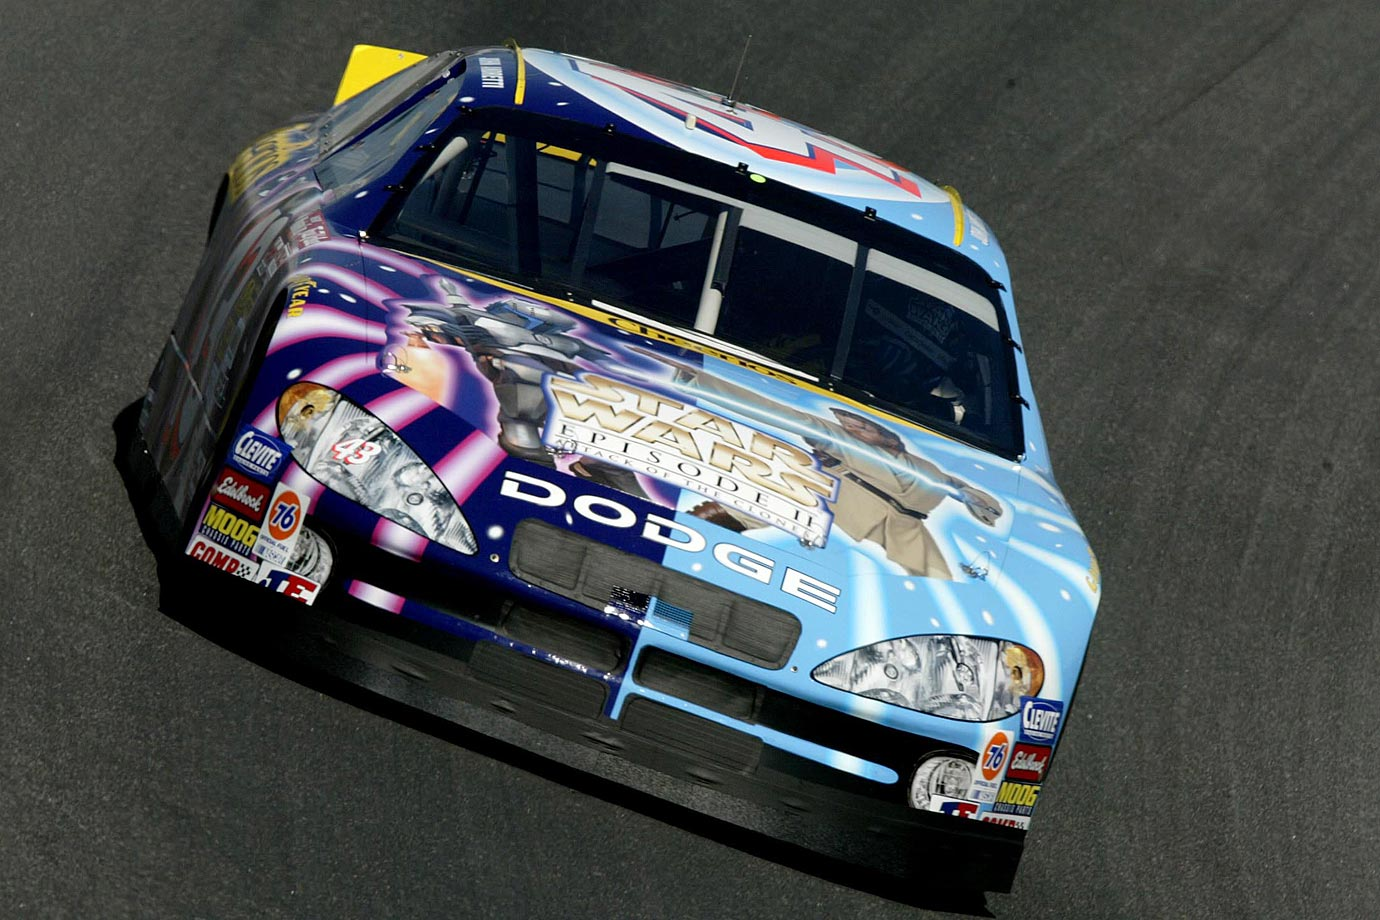 John Andretti drives the Cheerios/Star Wars Dodge Intrepid R/T during practice for the Coca-Cola 600 on May 23, 2002 at Lowe's Motor Speedway in Concord, N.C.